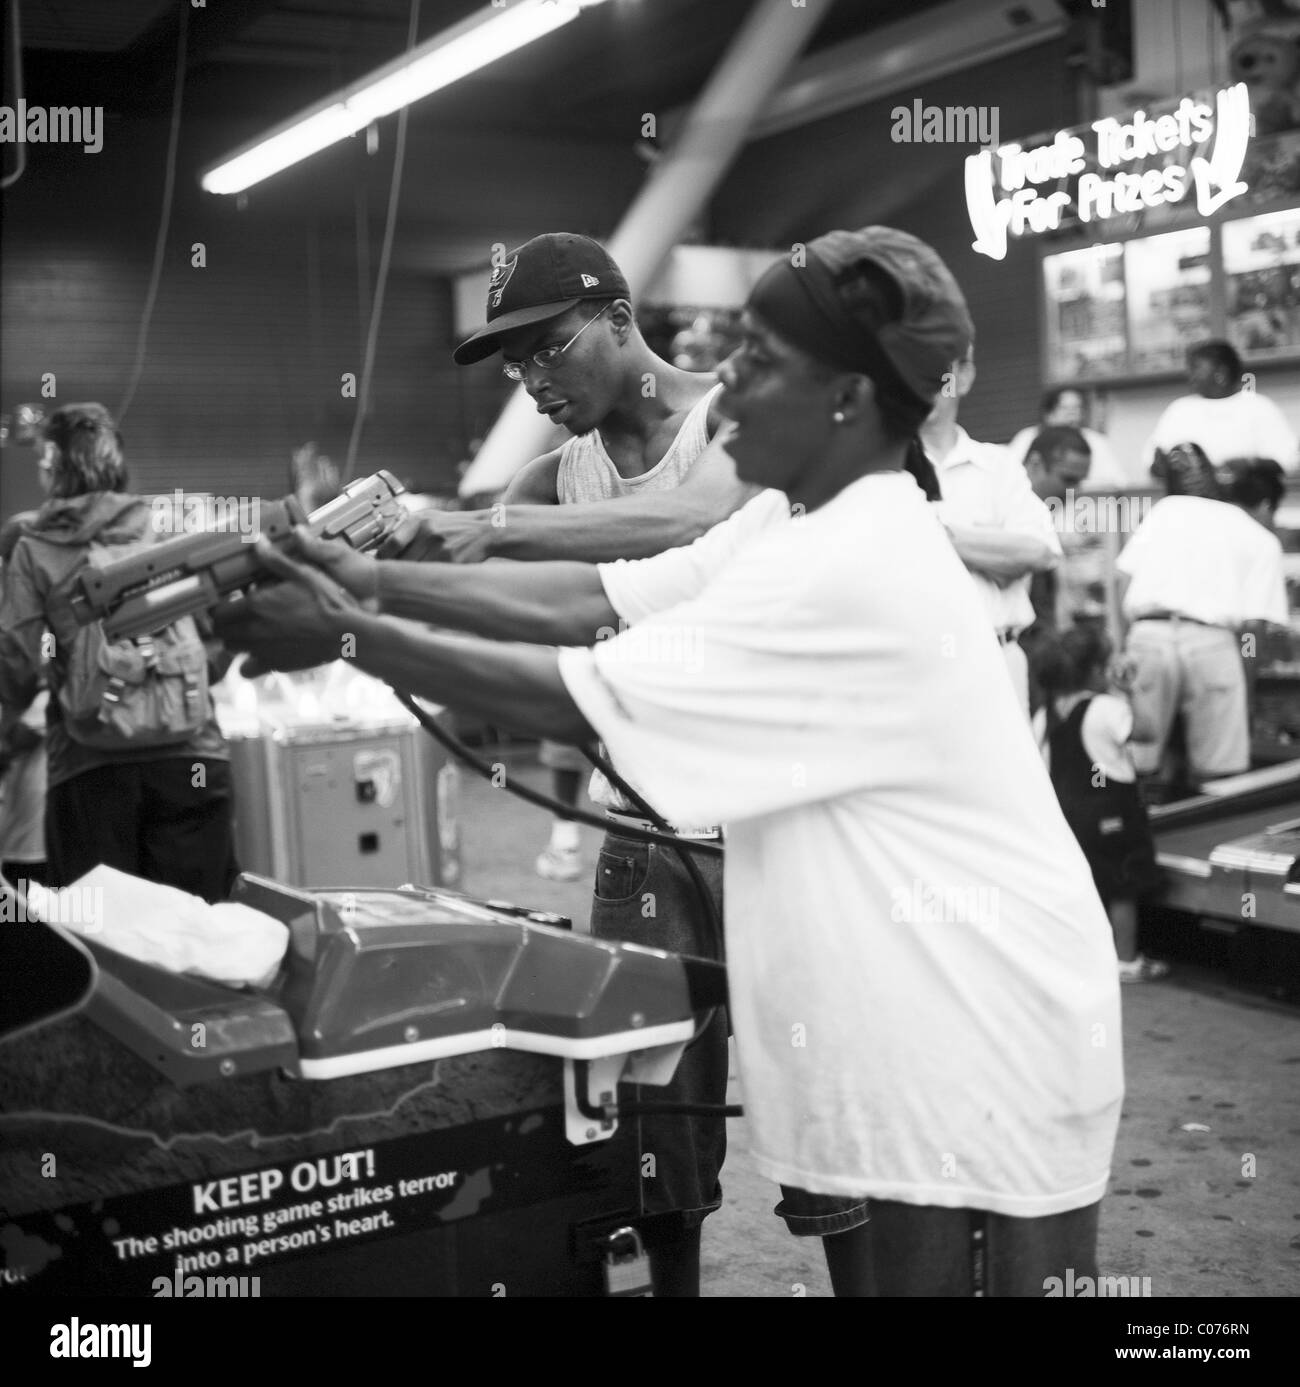 Two black boys playing a shooting game in an arcade, Coney Island, New York, USA - Stock Image